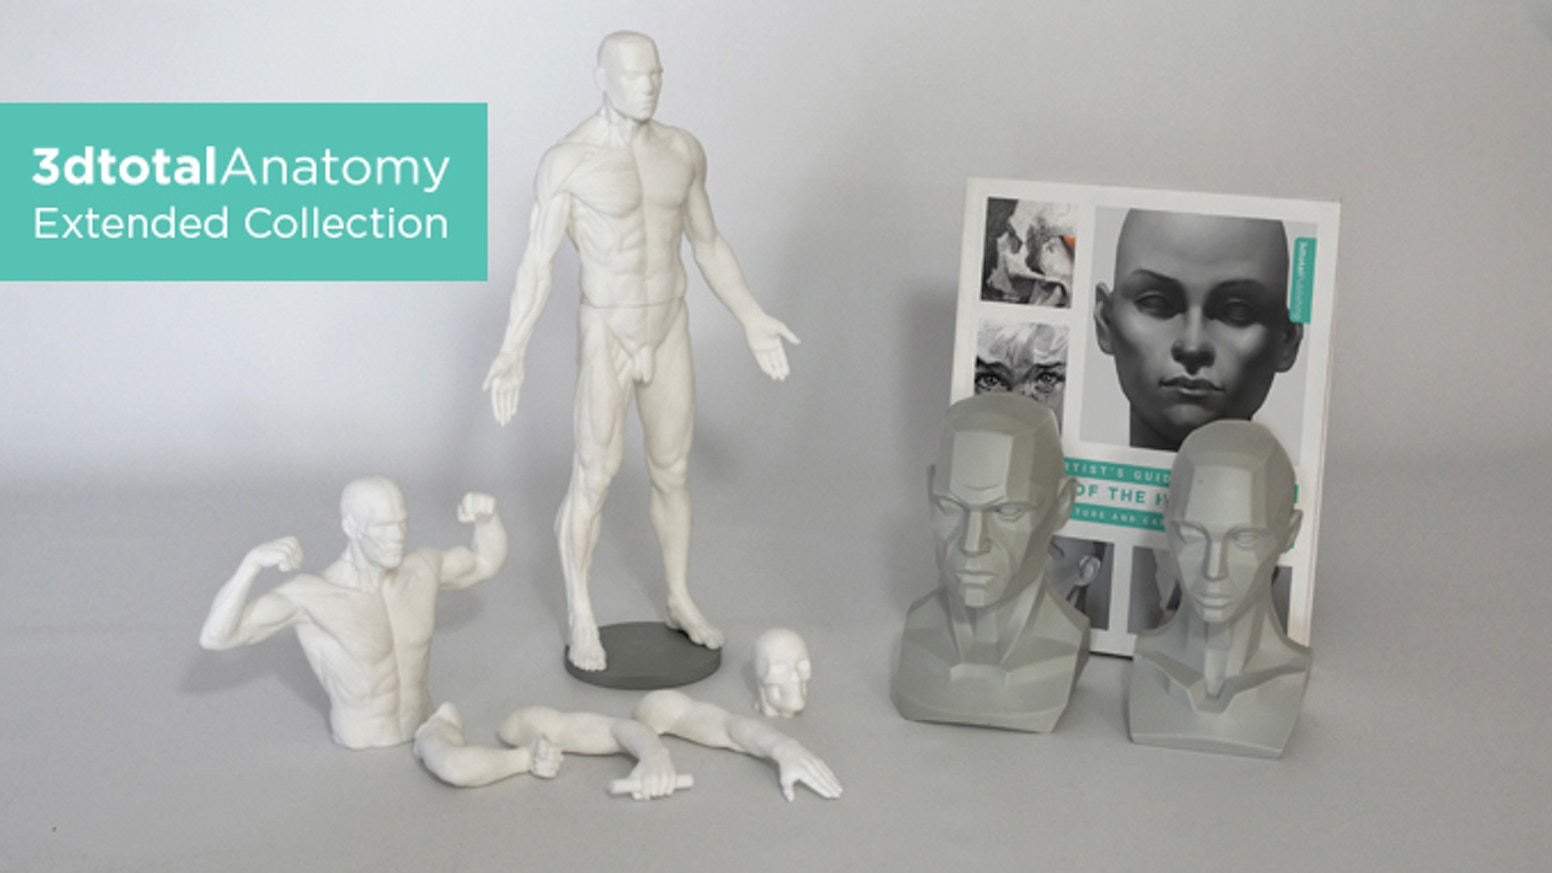 Expand your artistic understanding of anatomy with new planar busts, an adaptable male anatomy figure and invaluable reference book.